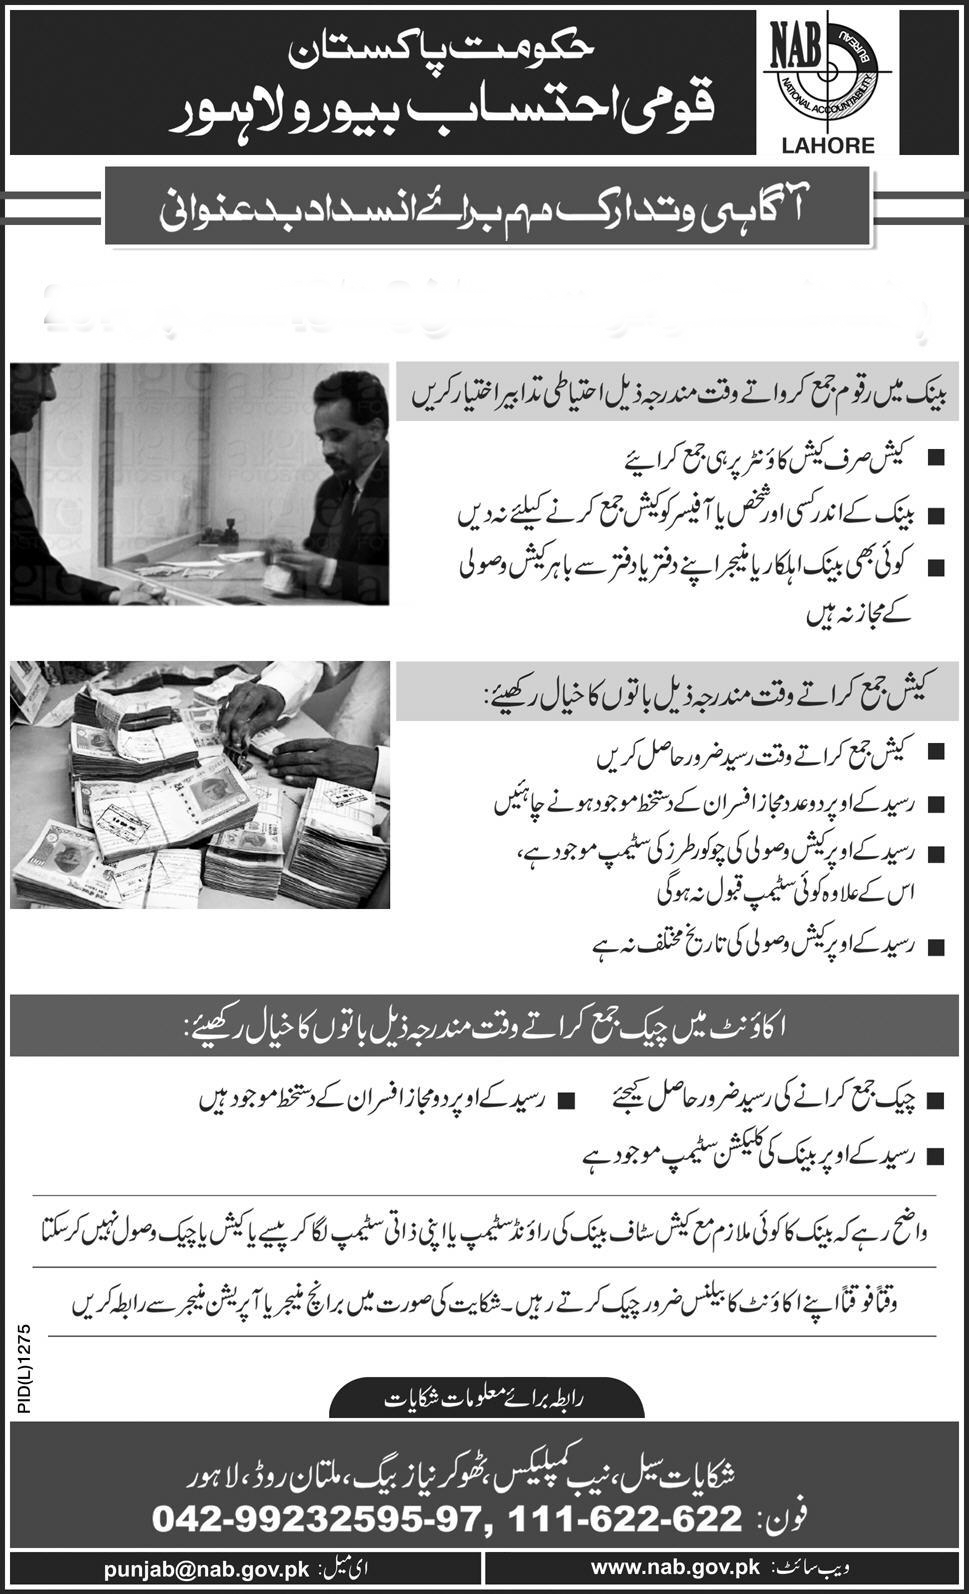 How to Prevent Bank Fraud? Tips in Urdu & English Languages